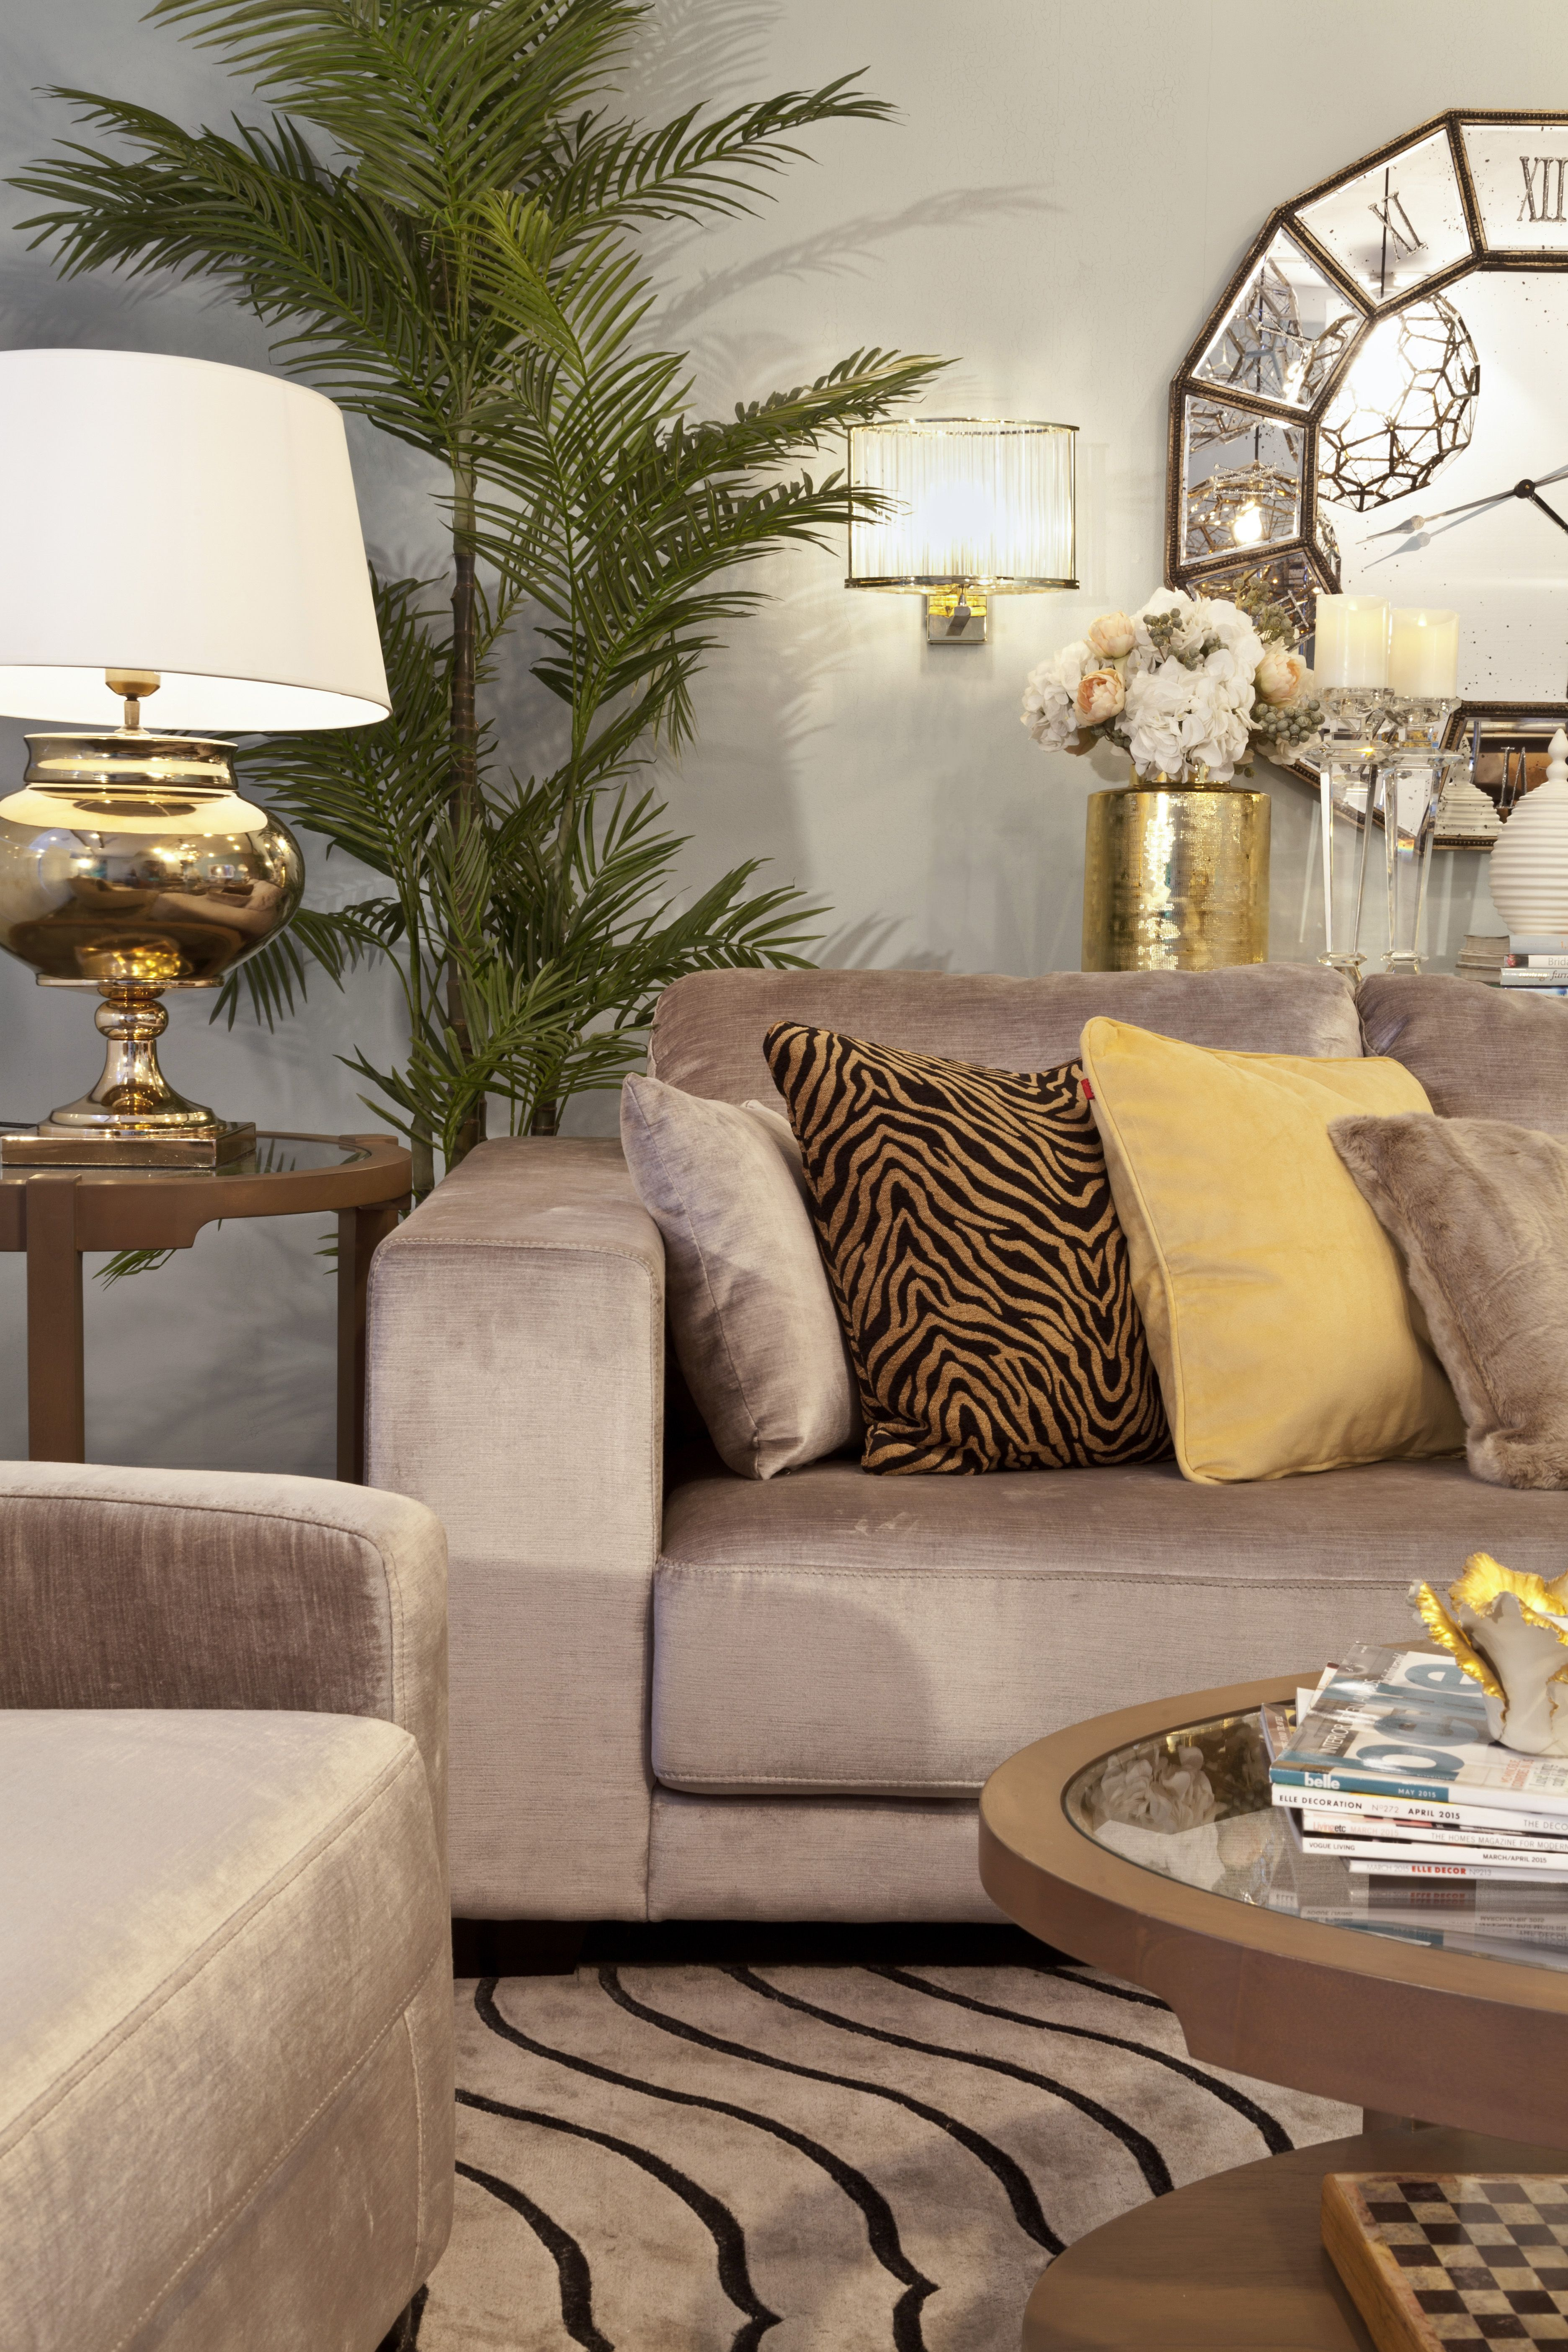 Living Opulent Add Some Animal Printed Cushions To The